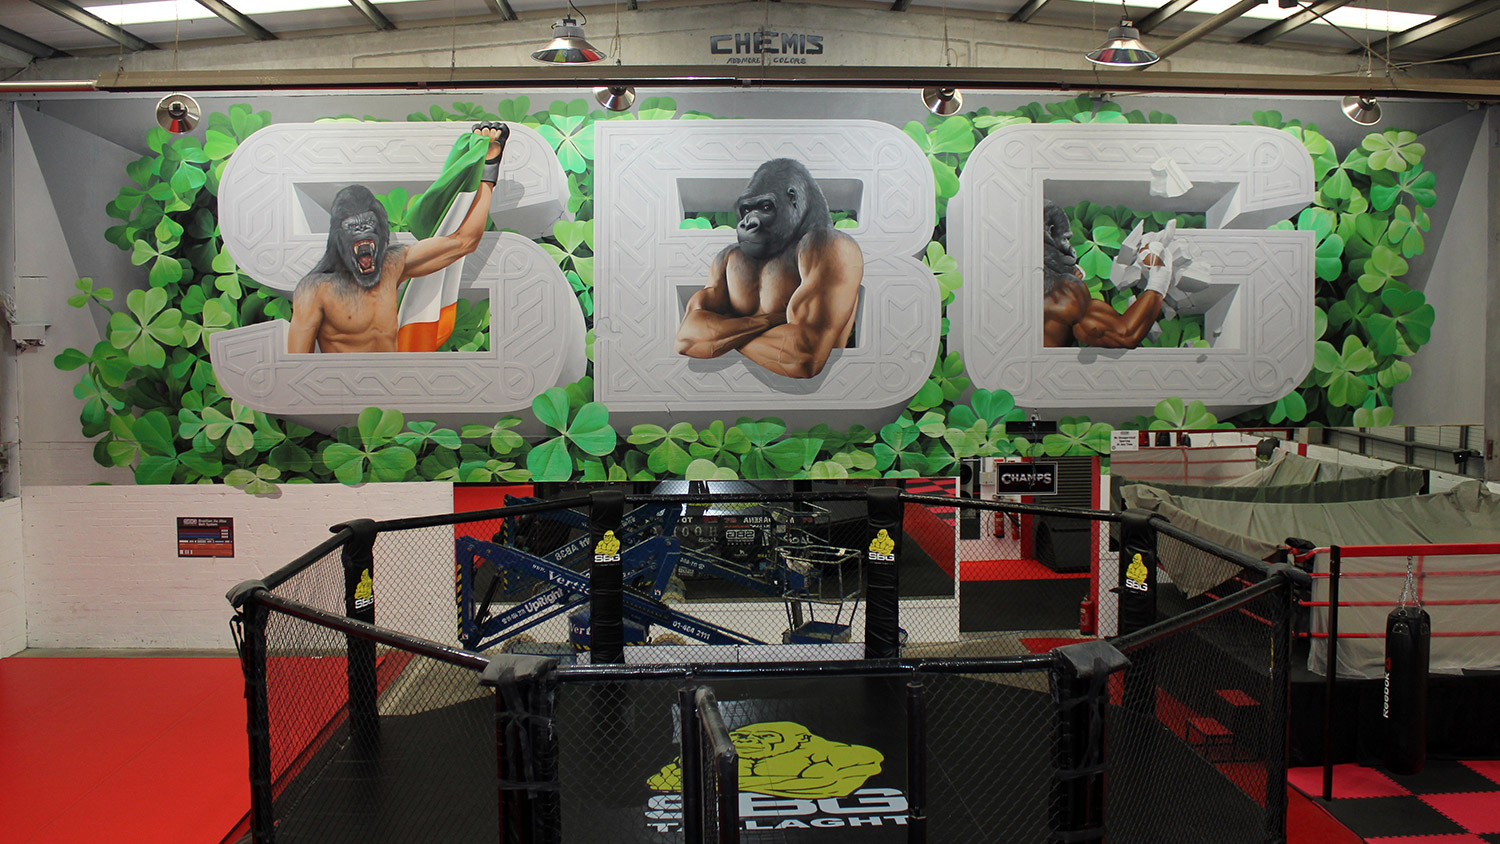 SBG, commission, ireland, chemis, mural, conor mcgregor